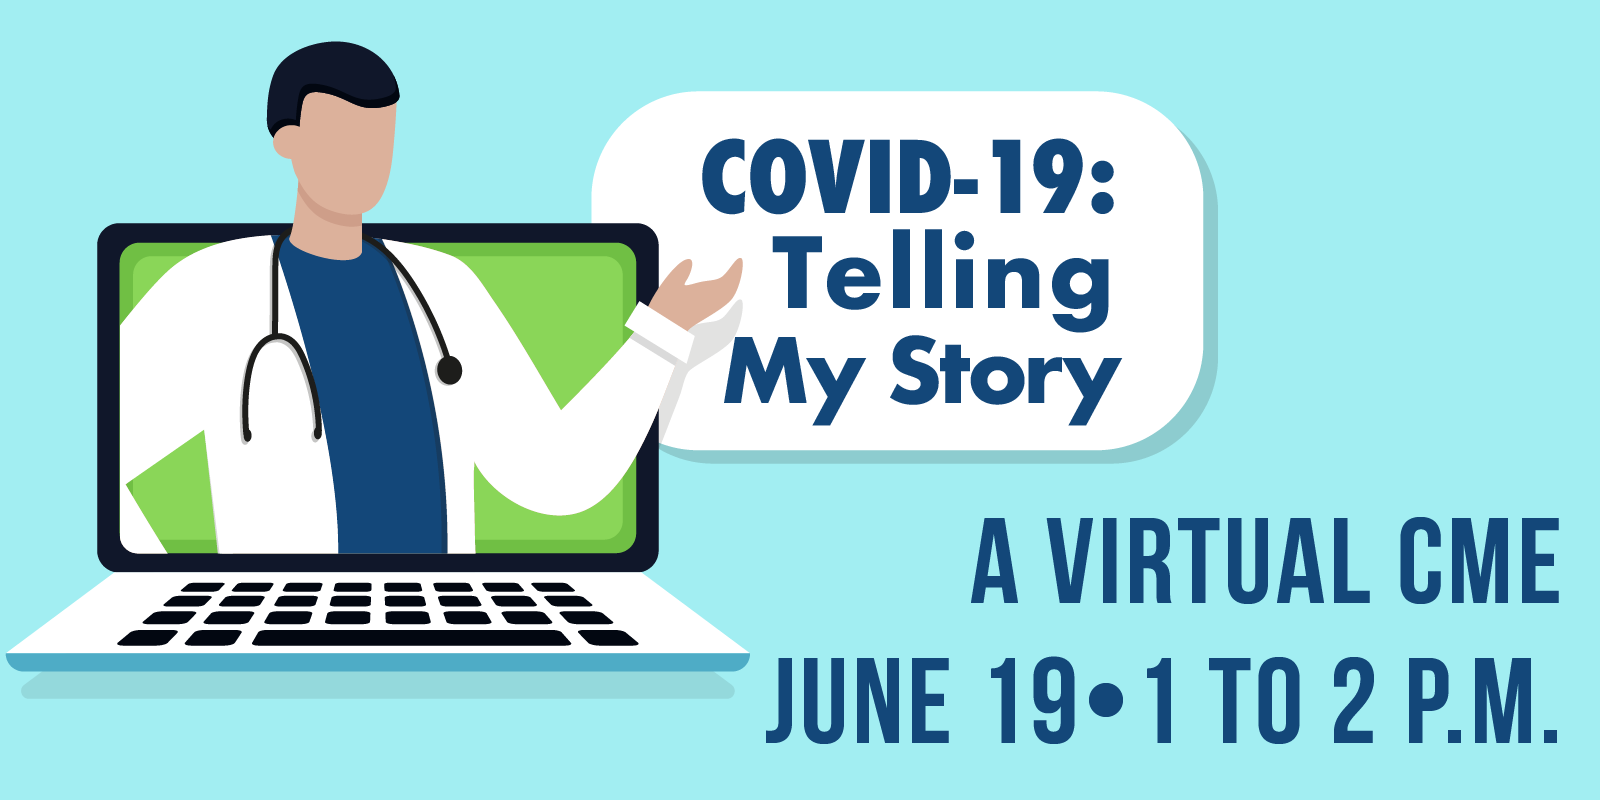 COVID-19 Telling My Story header graphic